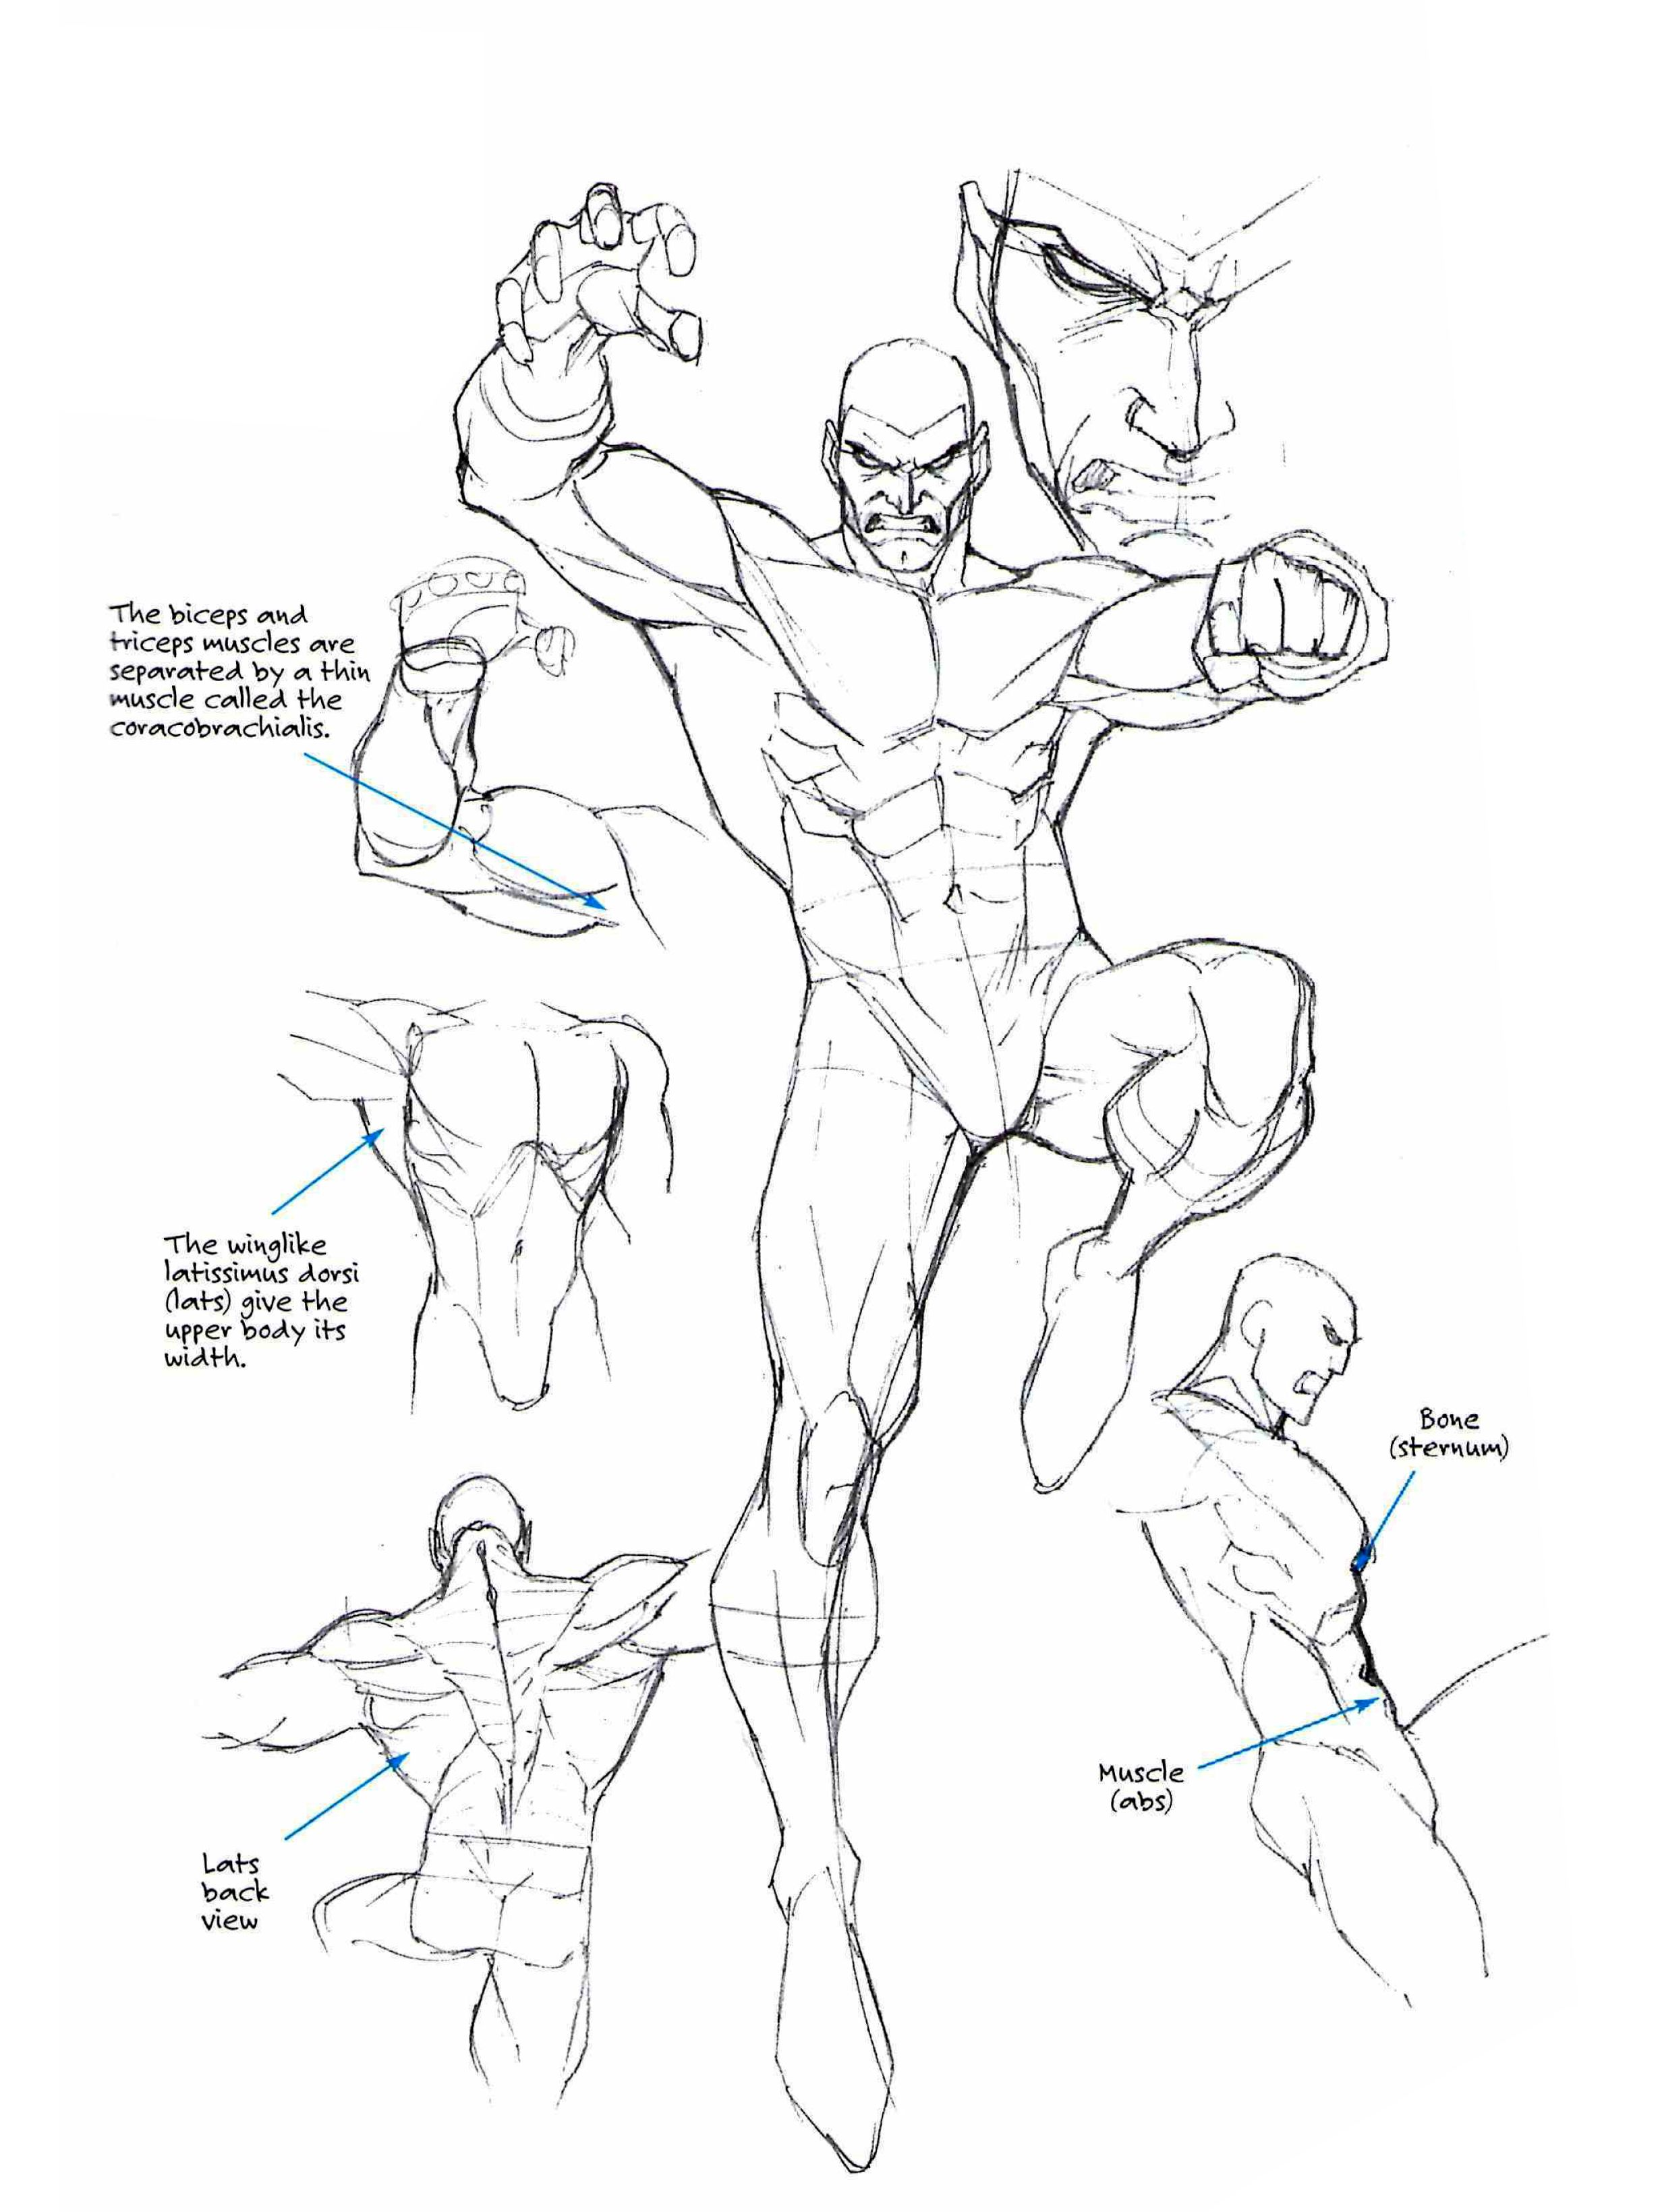 Roger Cruz - Drawing Cutting Edge Fusion | Reference | Pinterest ...